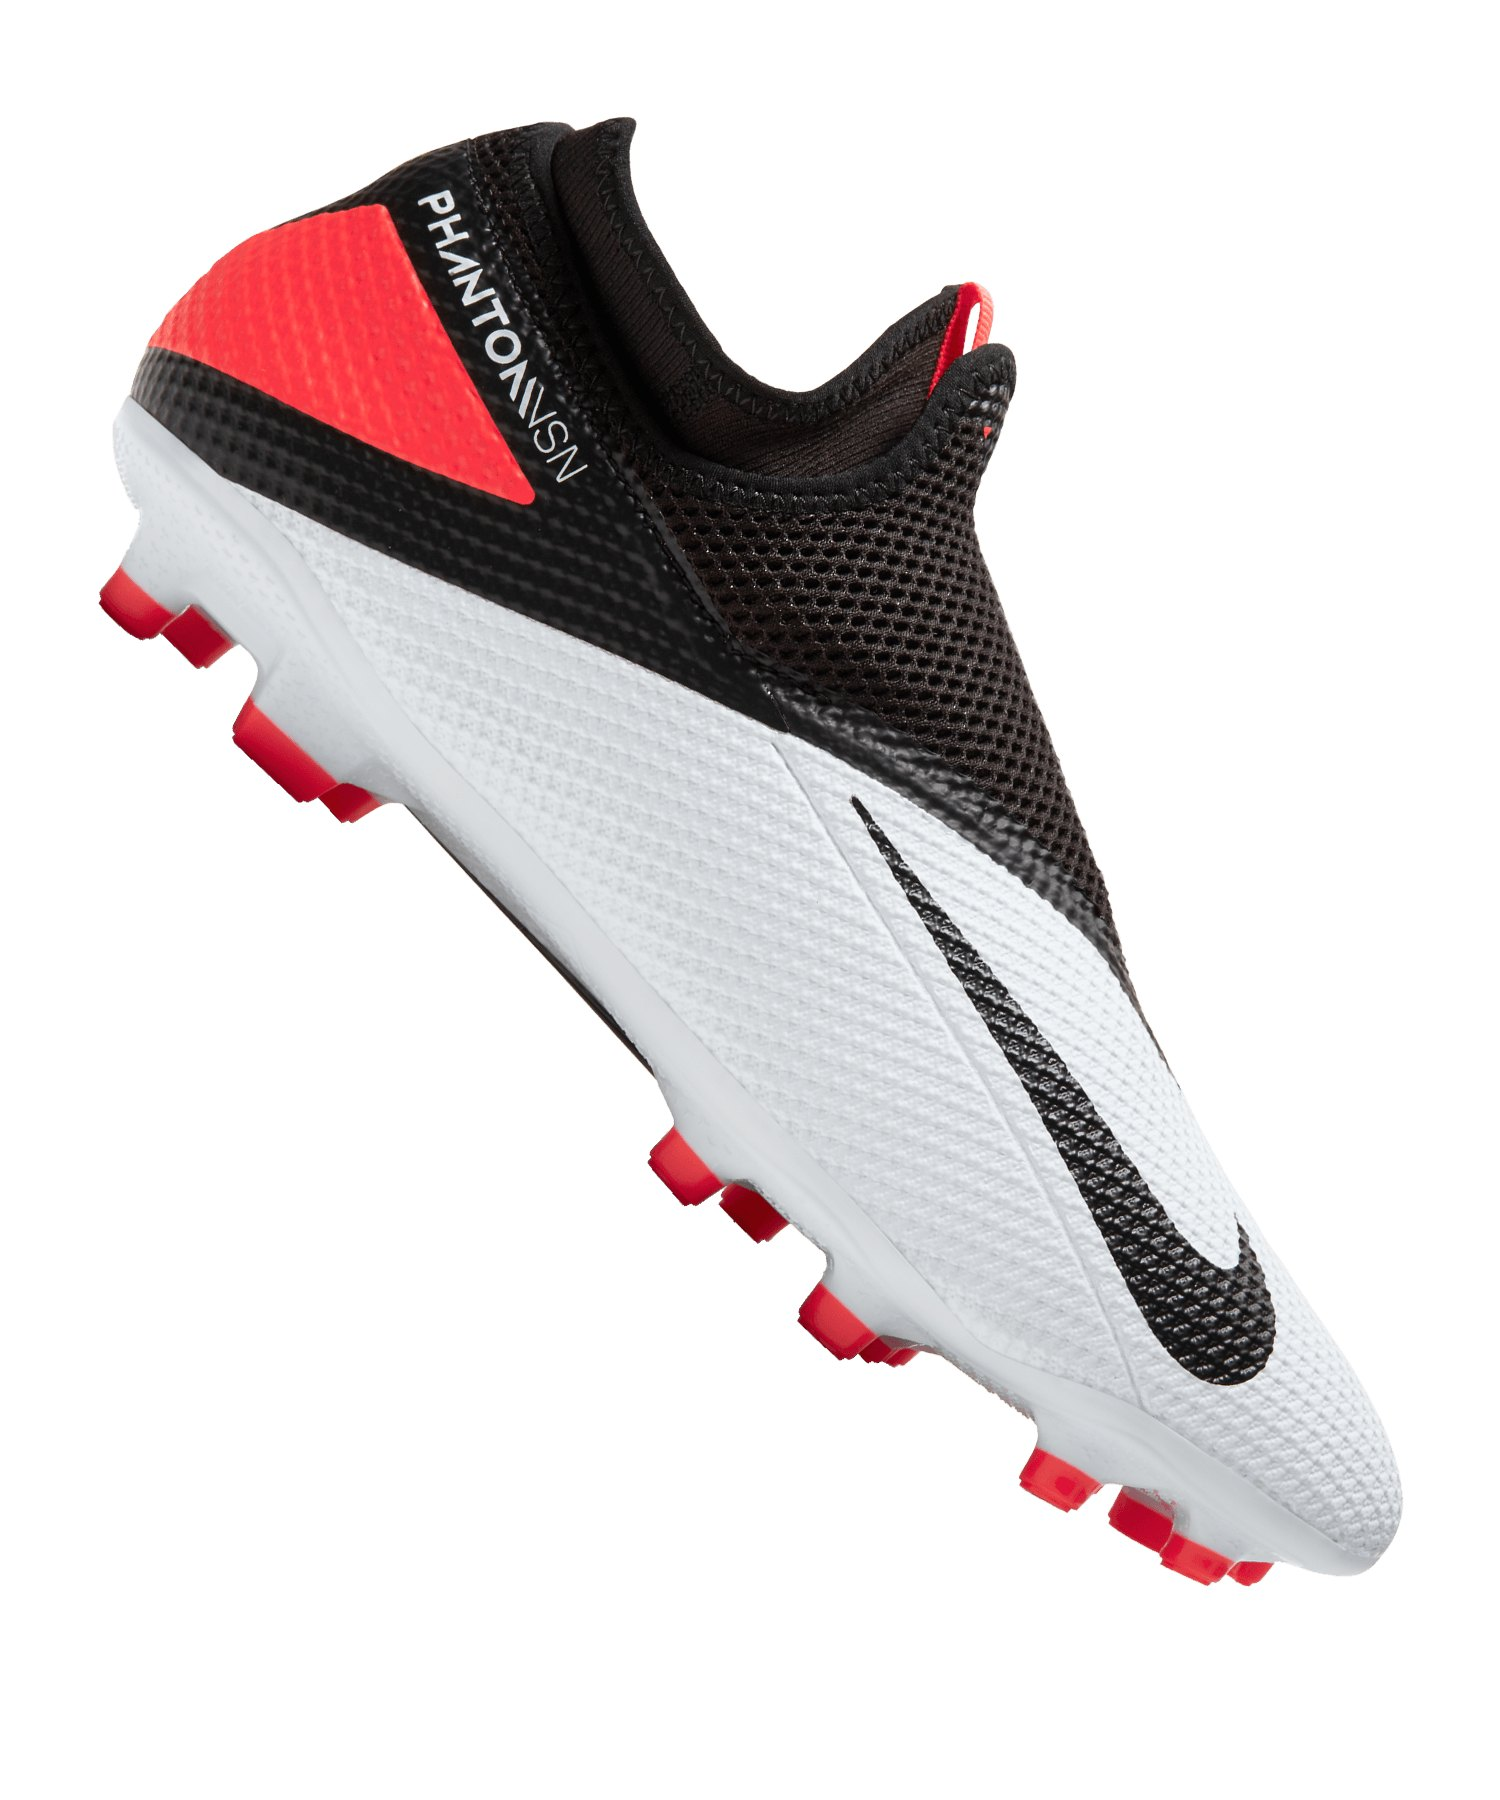 Nike Phantom Vision II Player Inspired Academy FG Weiss F106 - weiss